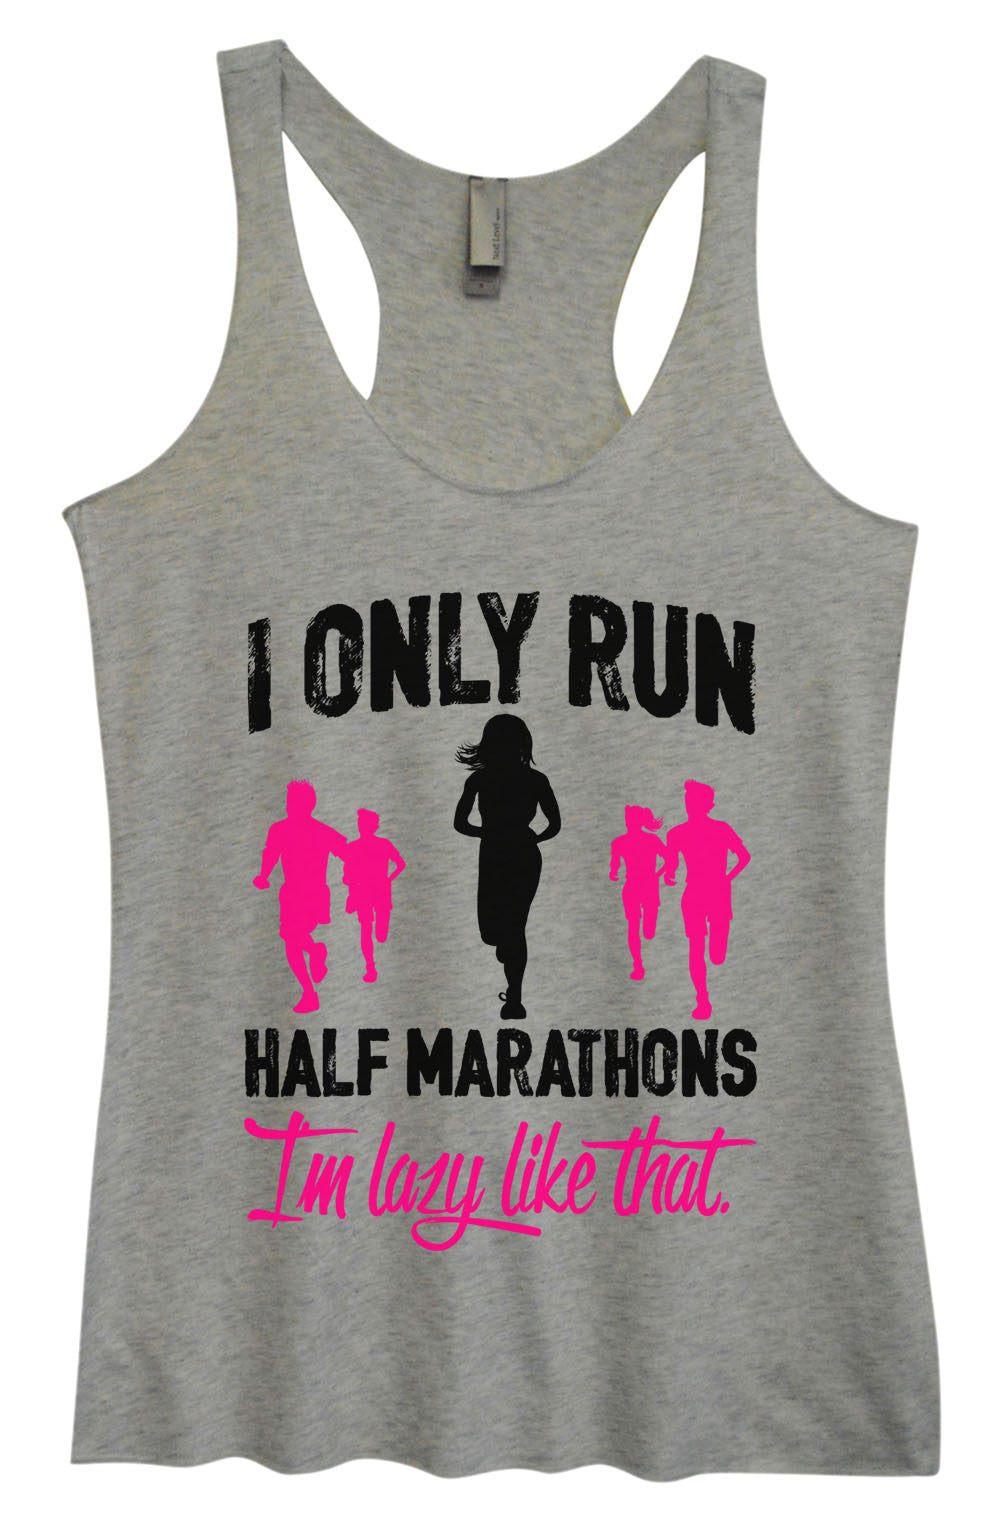 Womens Fashion Triblend Tank Top - I Only Run Half Marathons I'm Lazy Like That. - Tri-1489 - Funny Shirts Tank Tops Burnouts and Triblends  - 2